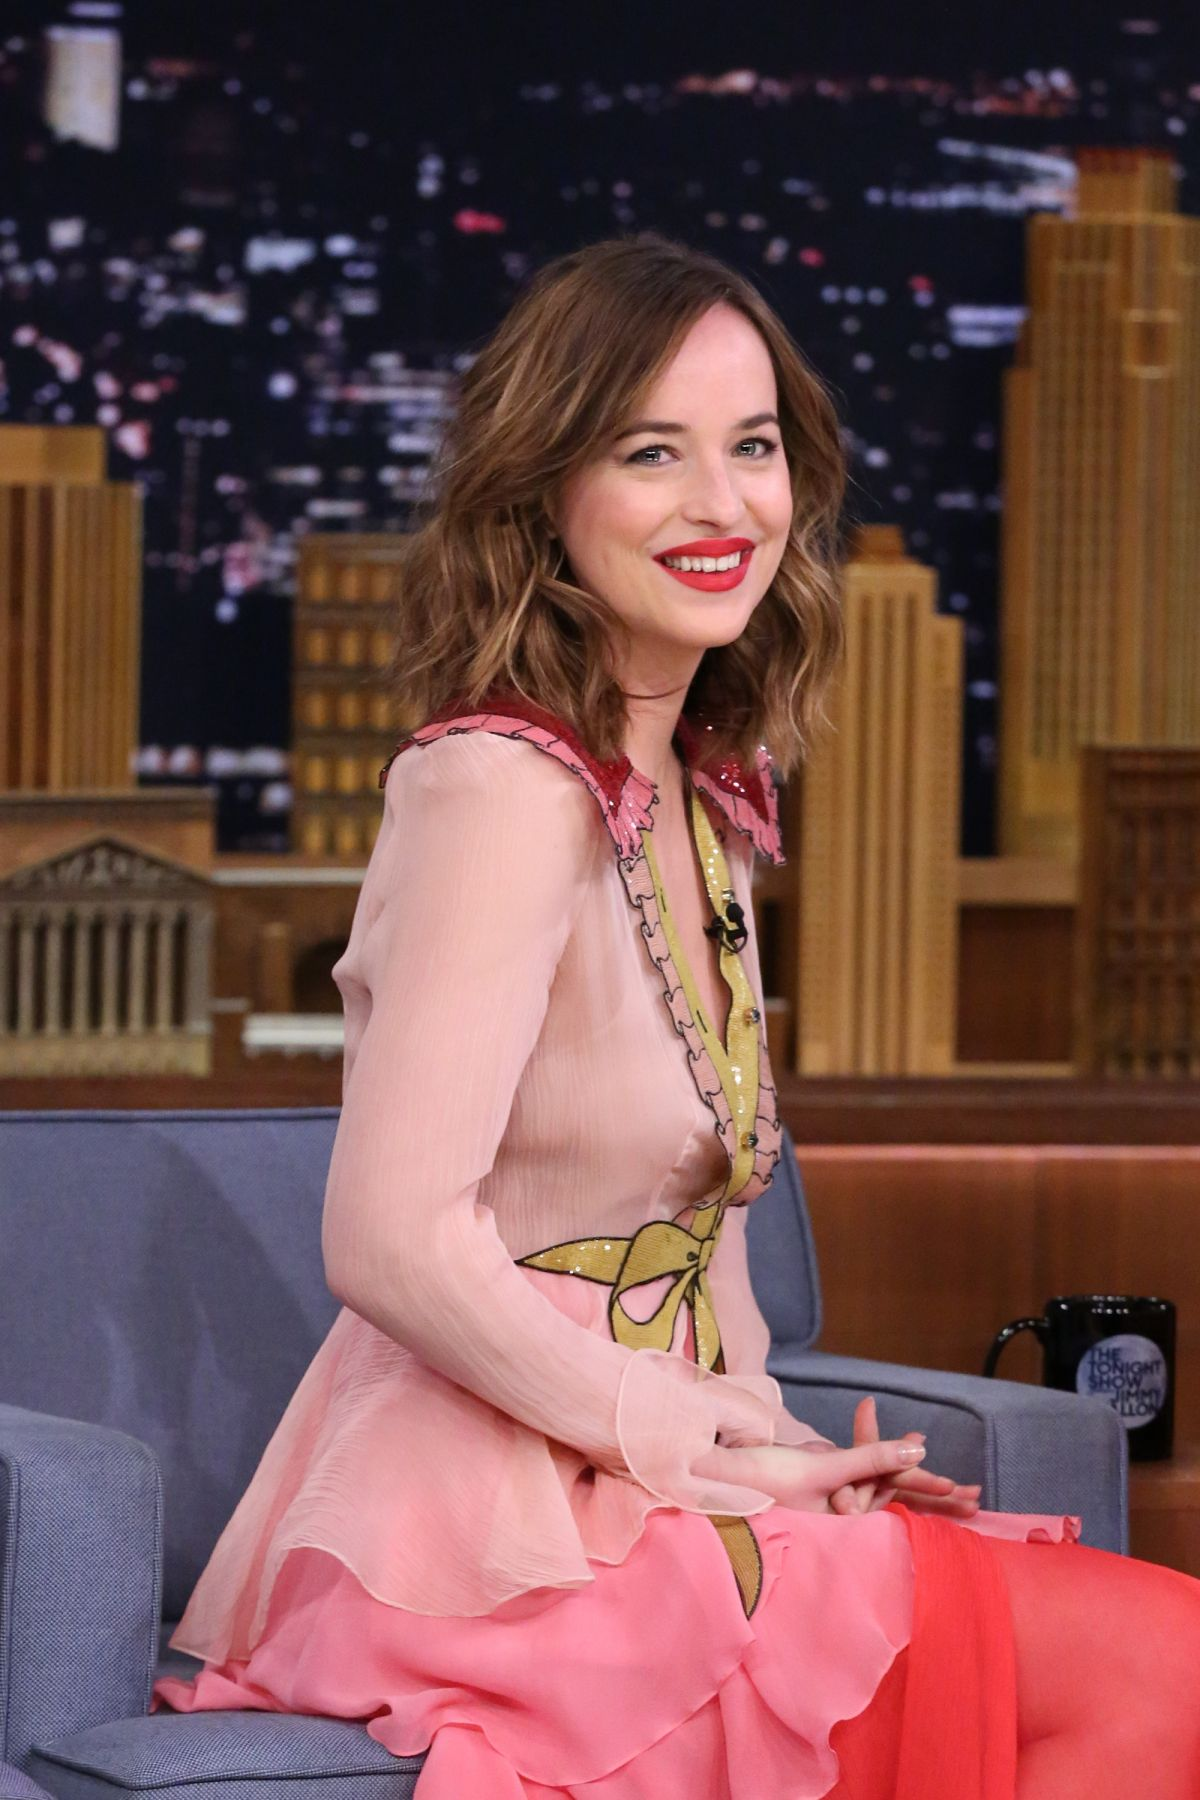 DAKOTA JOHNSON at Tonight Show Starring Jimmy Fallon in New York 01/20/2016